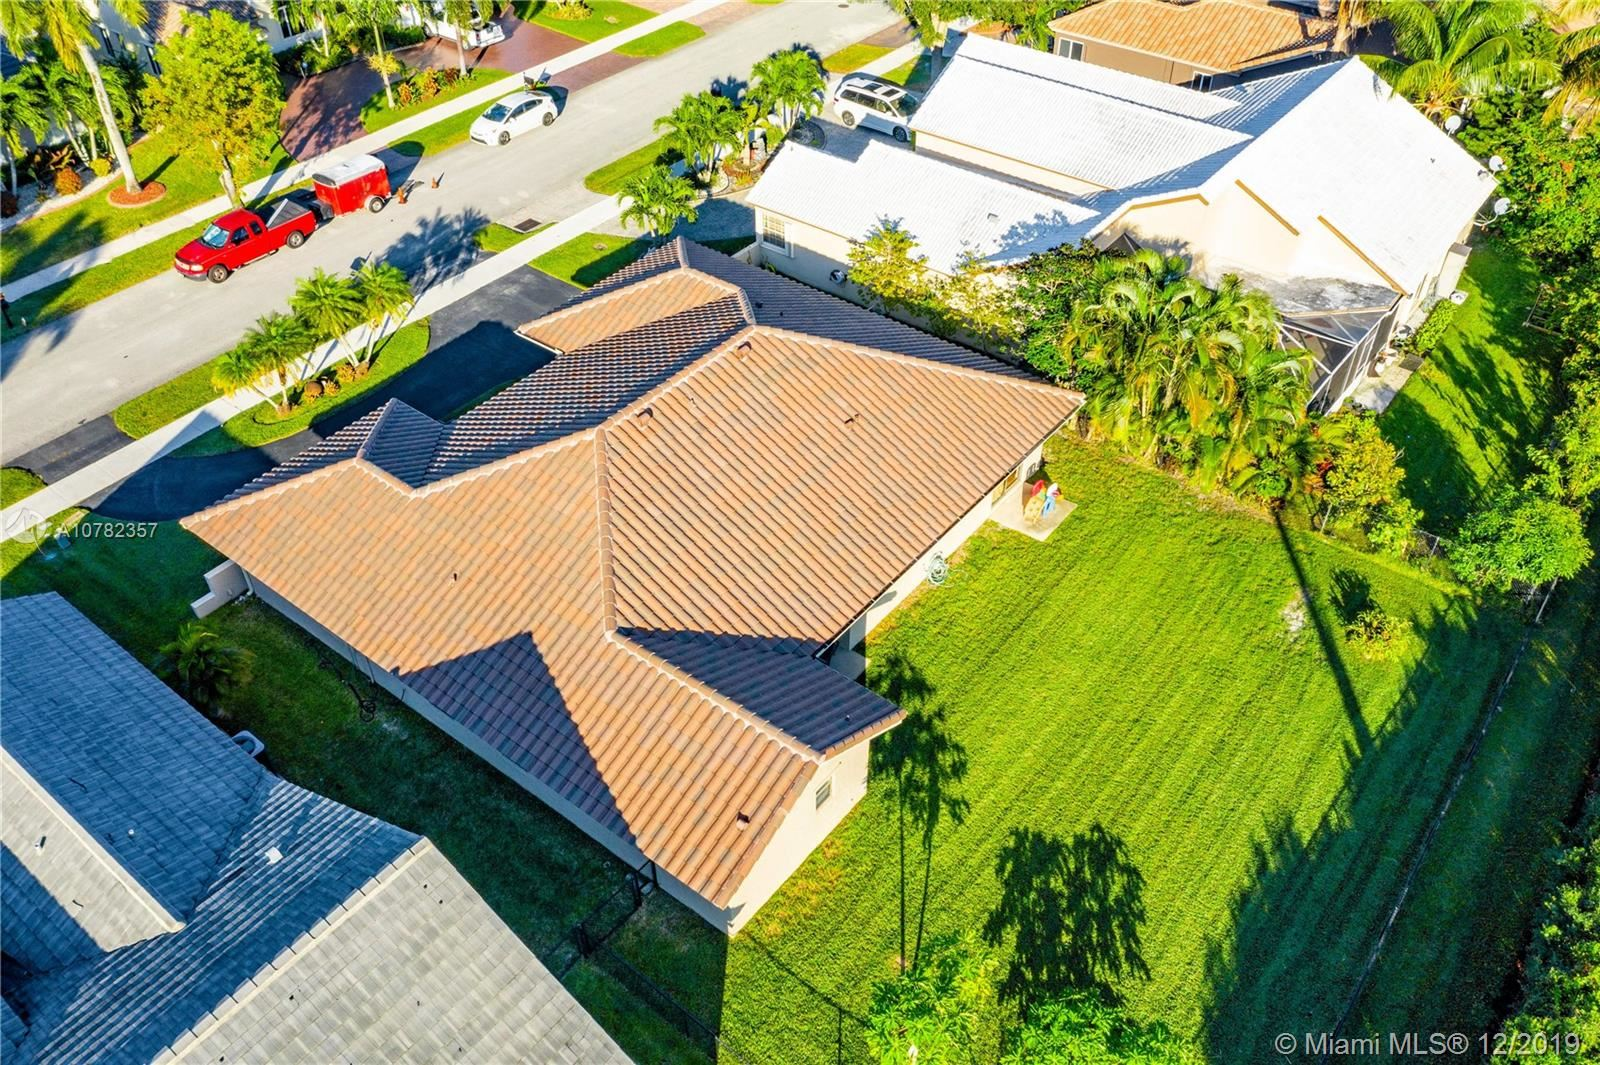 Photo of 9070 S Southern Orchard Rd S, Davie, FL 33328 (MLS # A10782357)